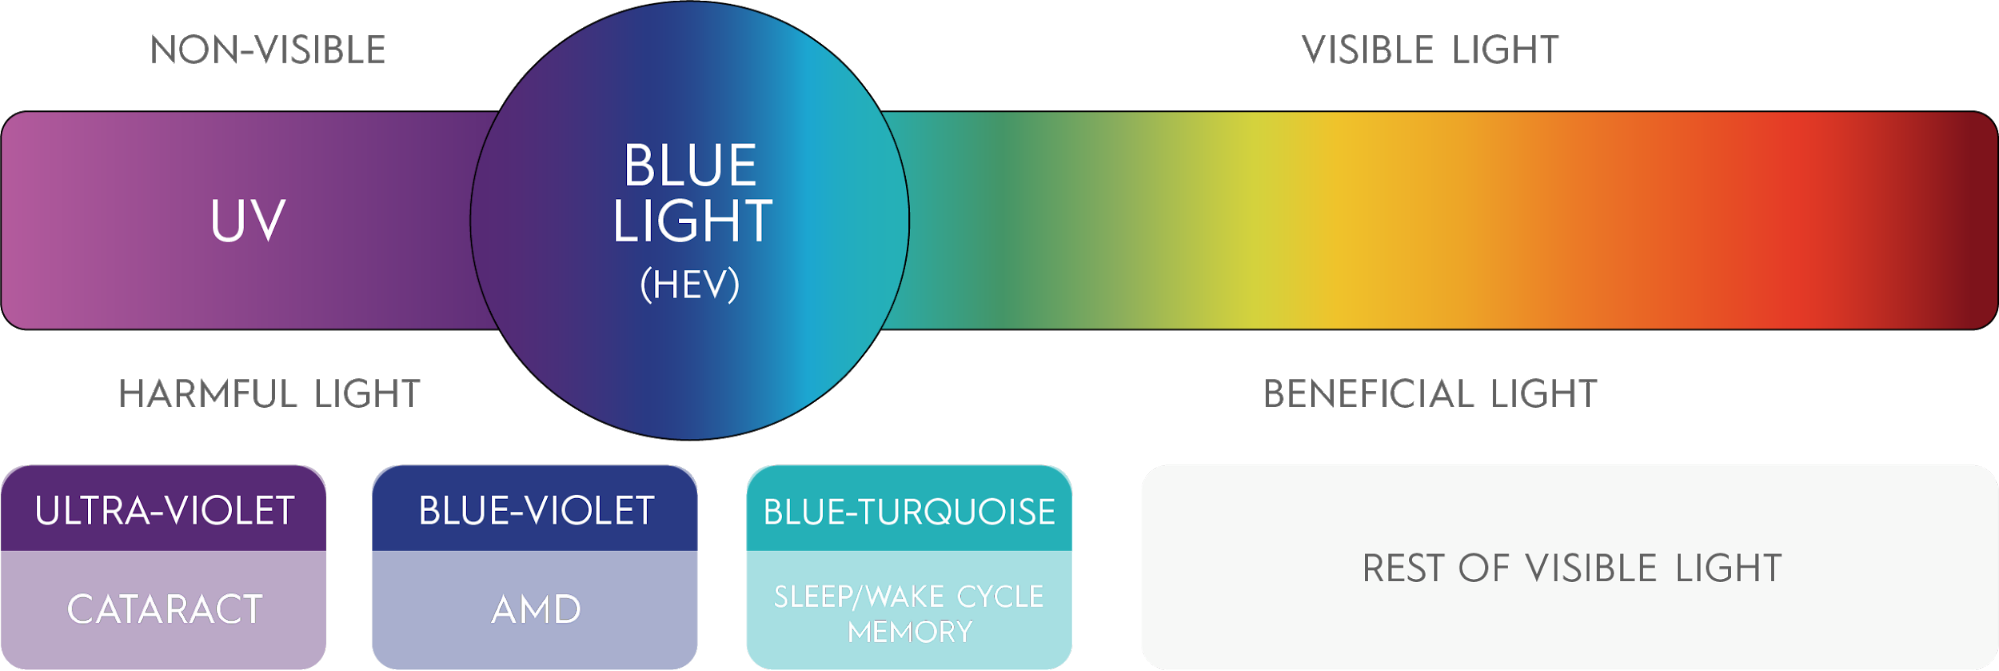 Natural blue light is part of the balanced spectrum of white light from the sun and this can have beneficial effects. Artificial blue light from screens and other LED lights, however, has a harmful effect on our health at any time of day.